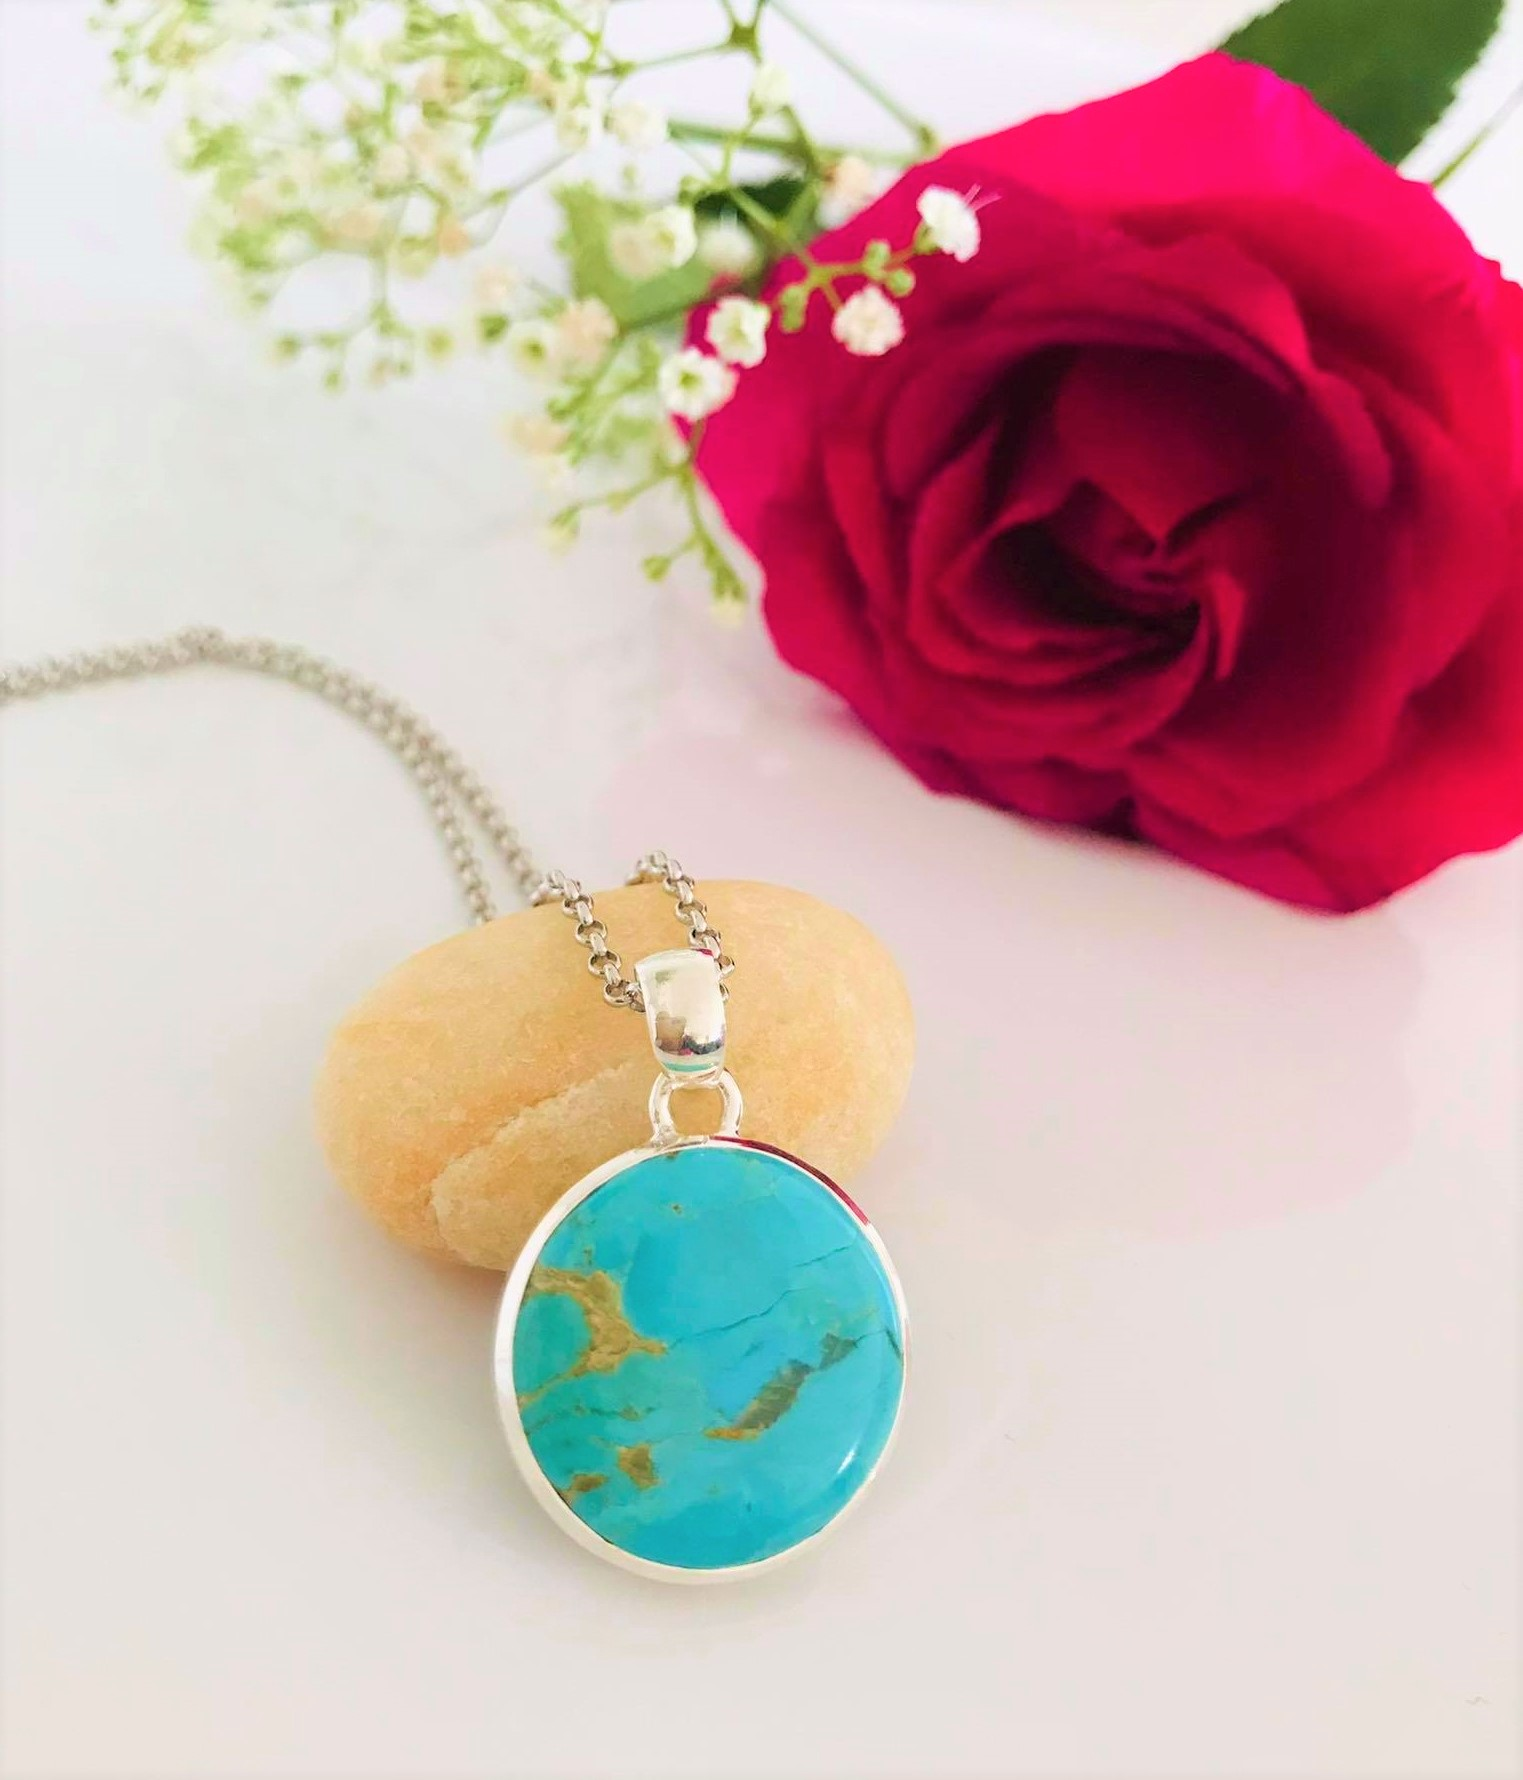 Round Turquoise Sterling Silver Pendant & Chain Image